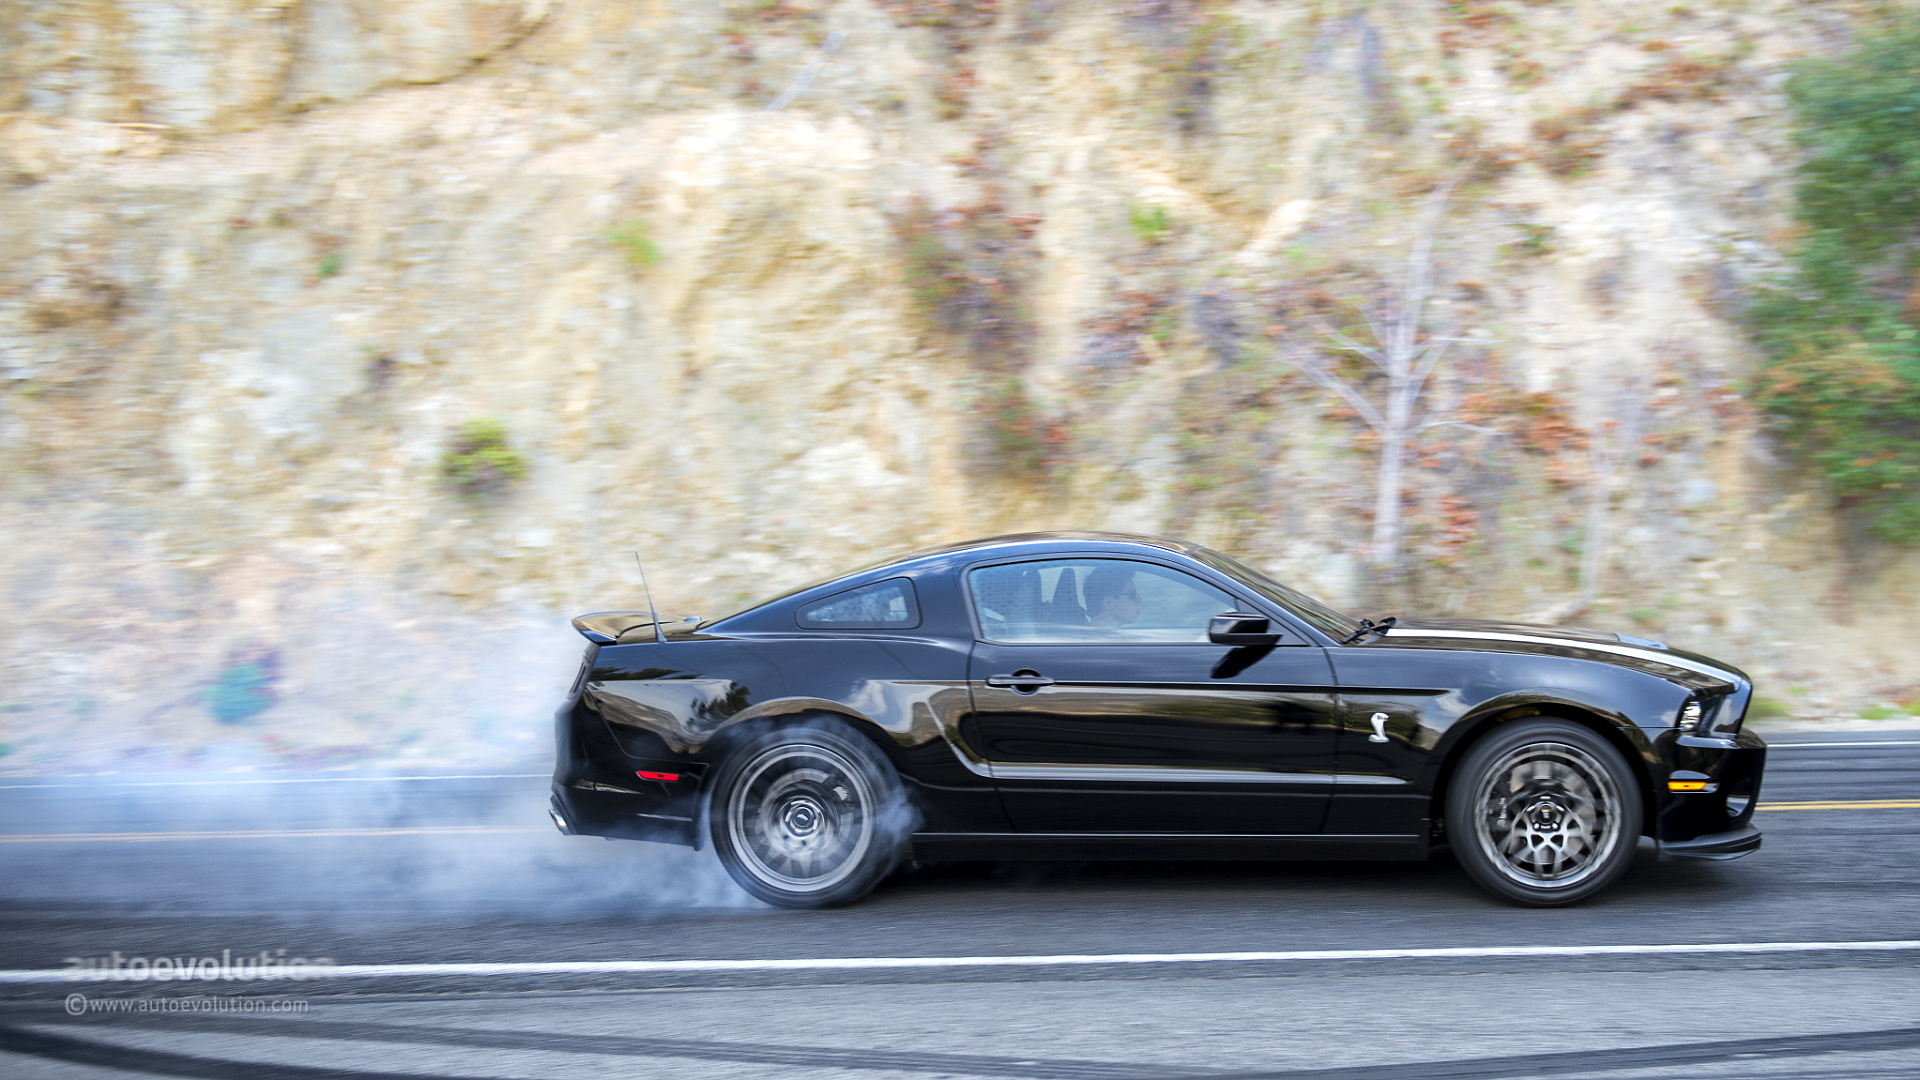 2014 Ford Mustang Shelby GT500 Review - autoevolution